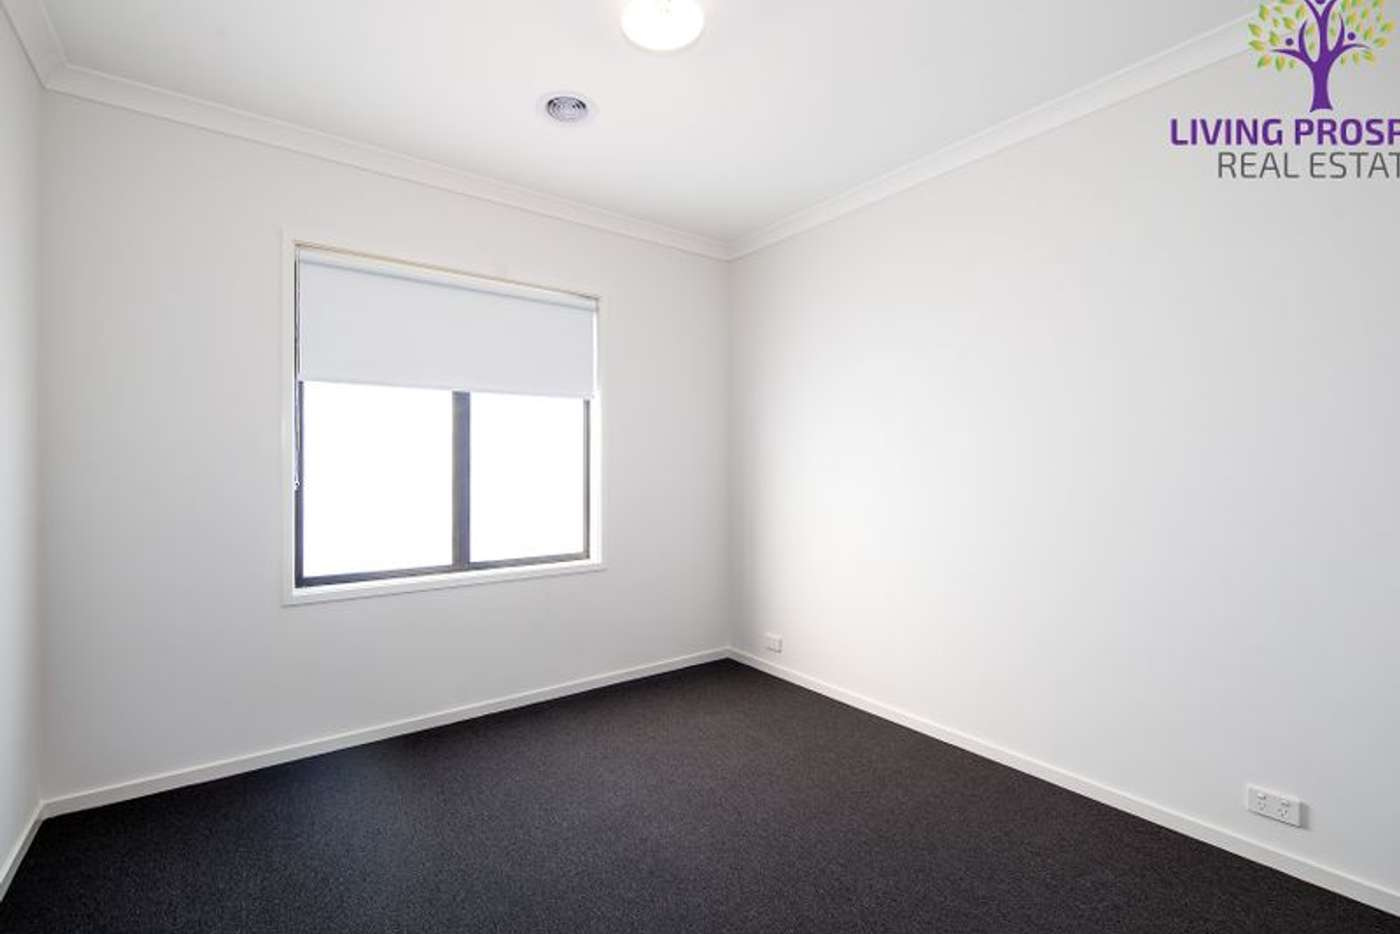 Sixth view of Homely townhouse listing, 156 Tom Robert Parade, Point Cook VIC 3030